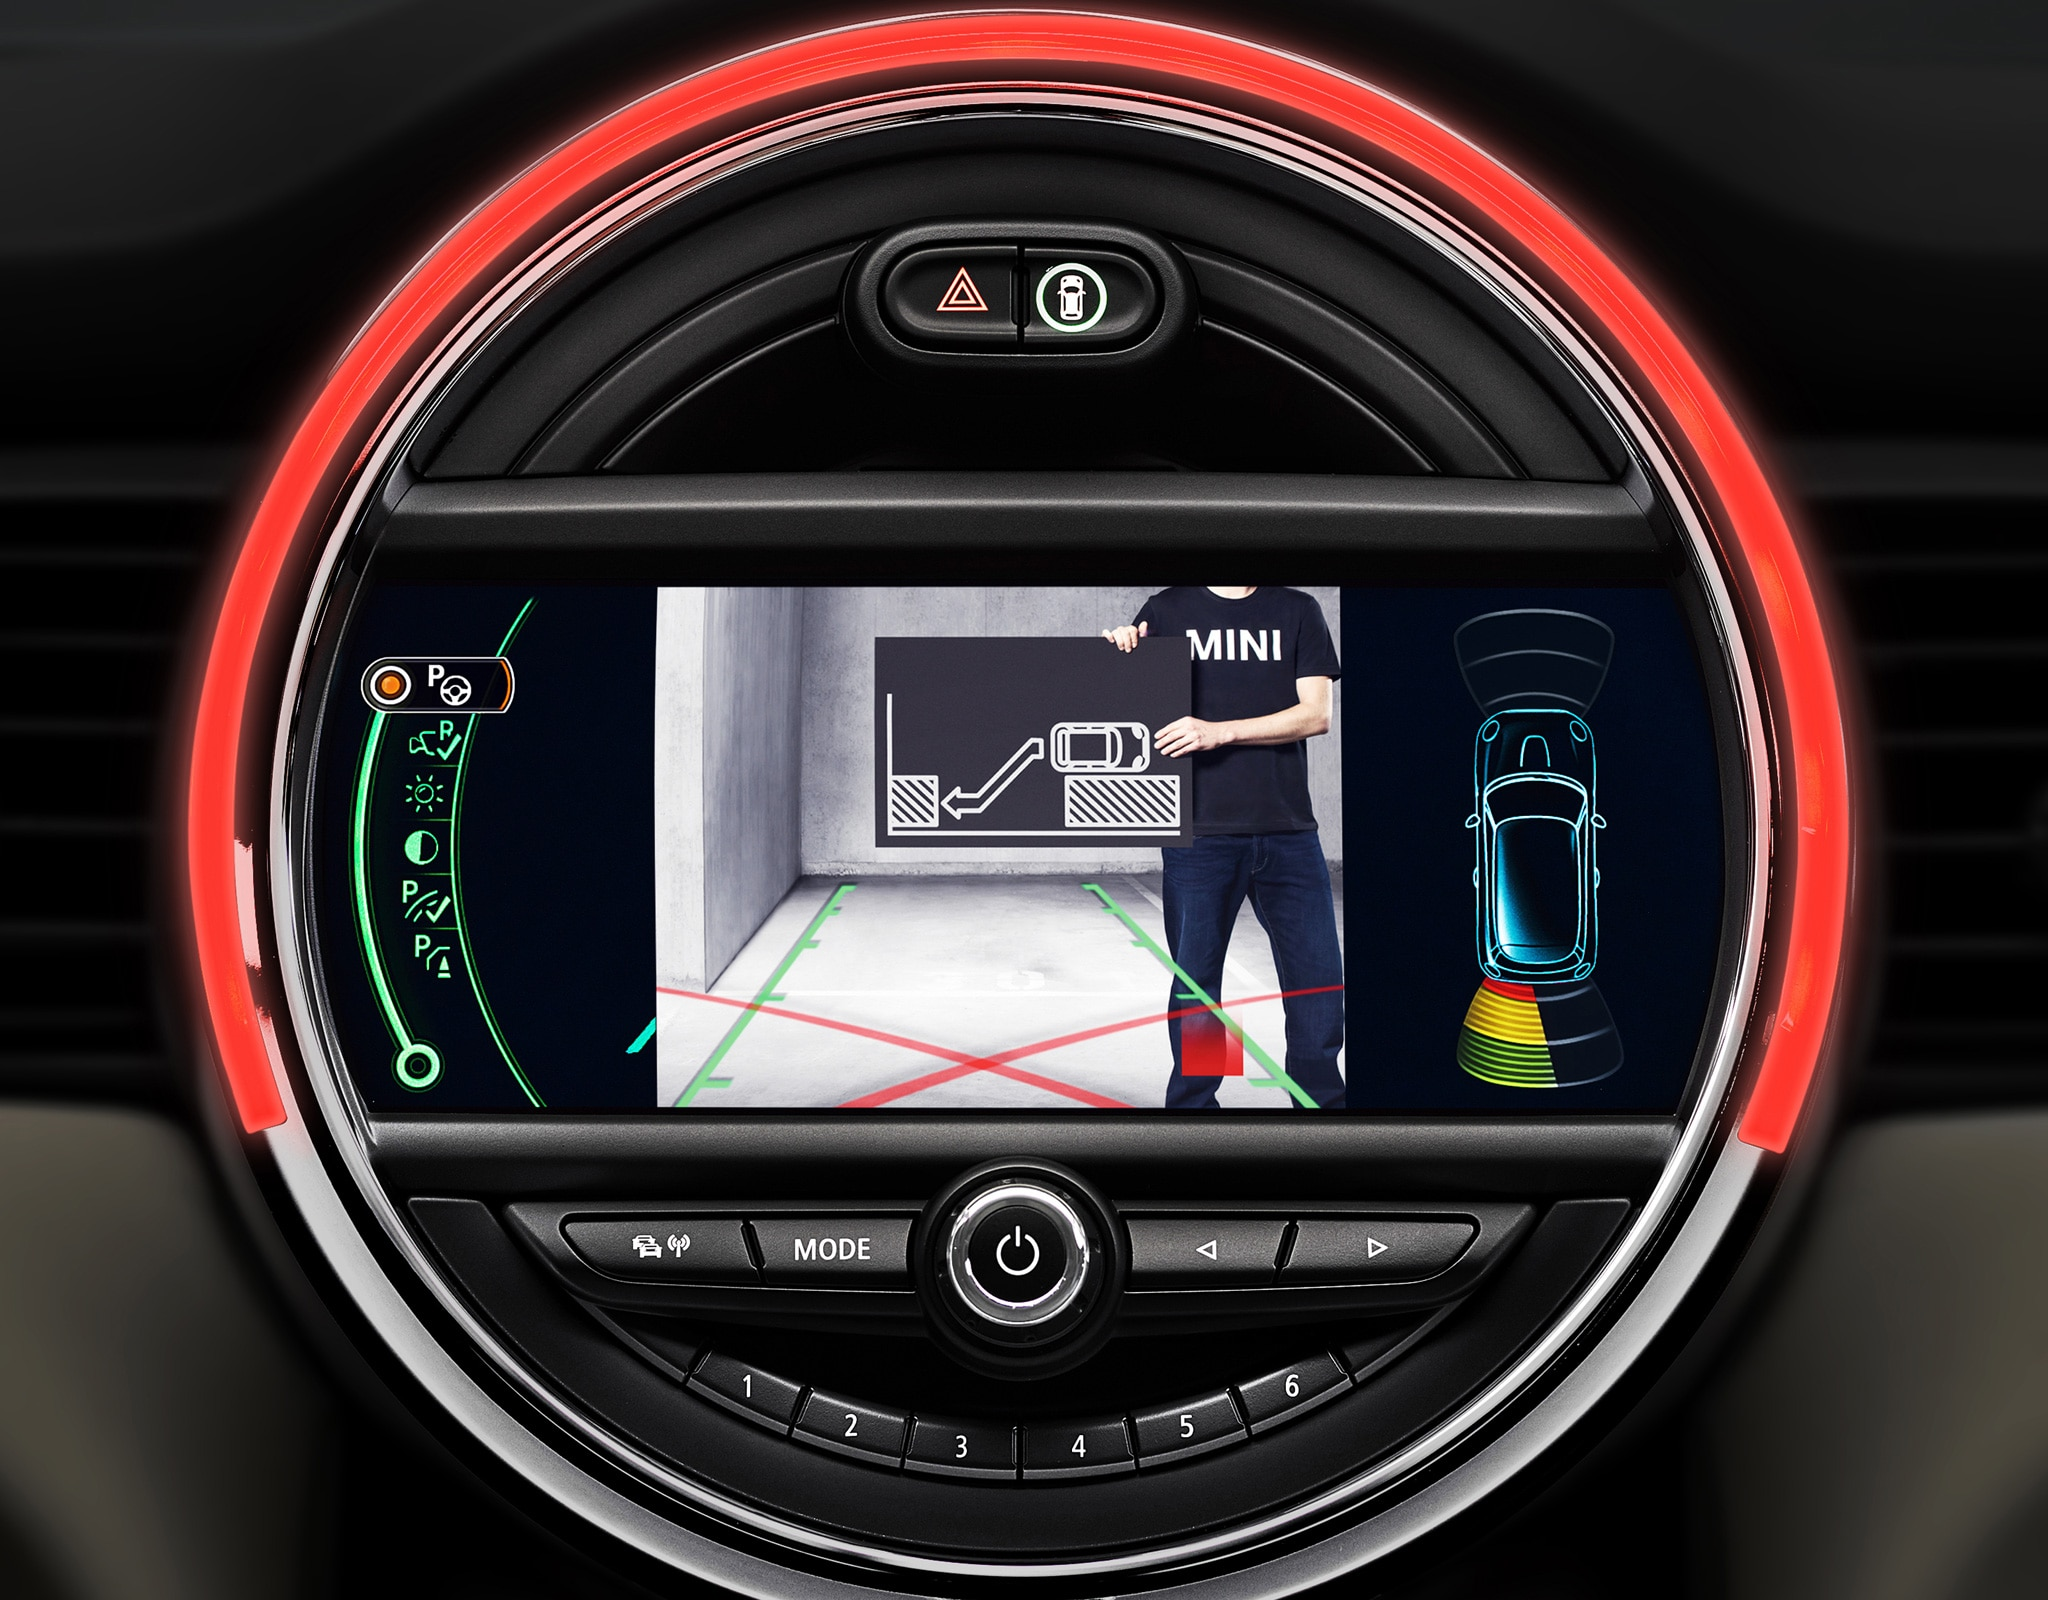 2015 Mini Cooper Driver Assistance Screen1